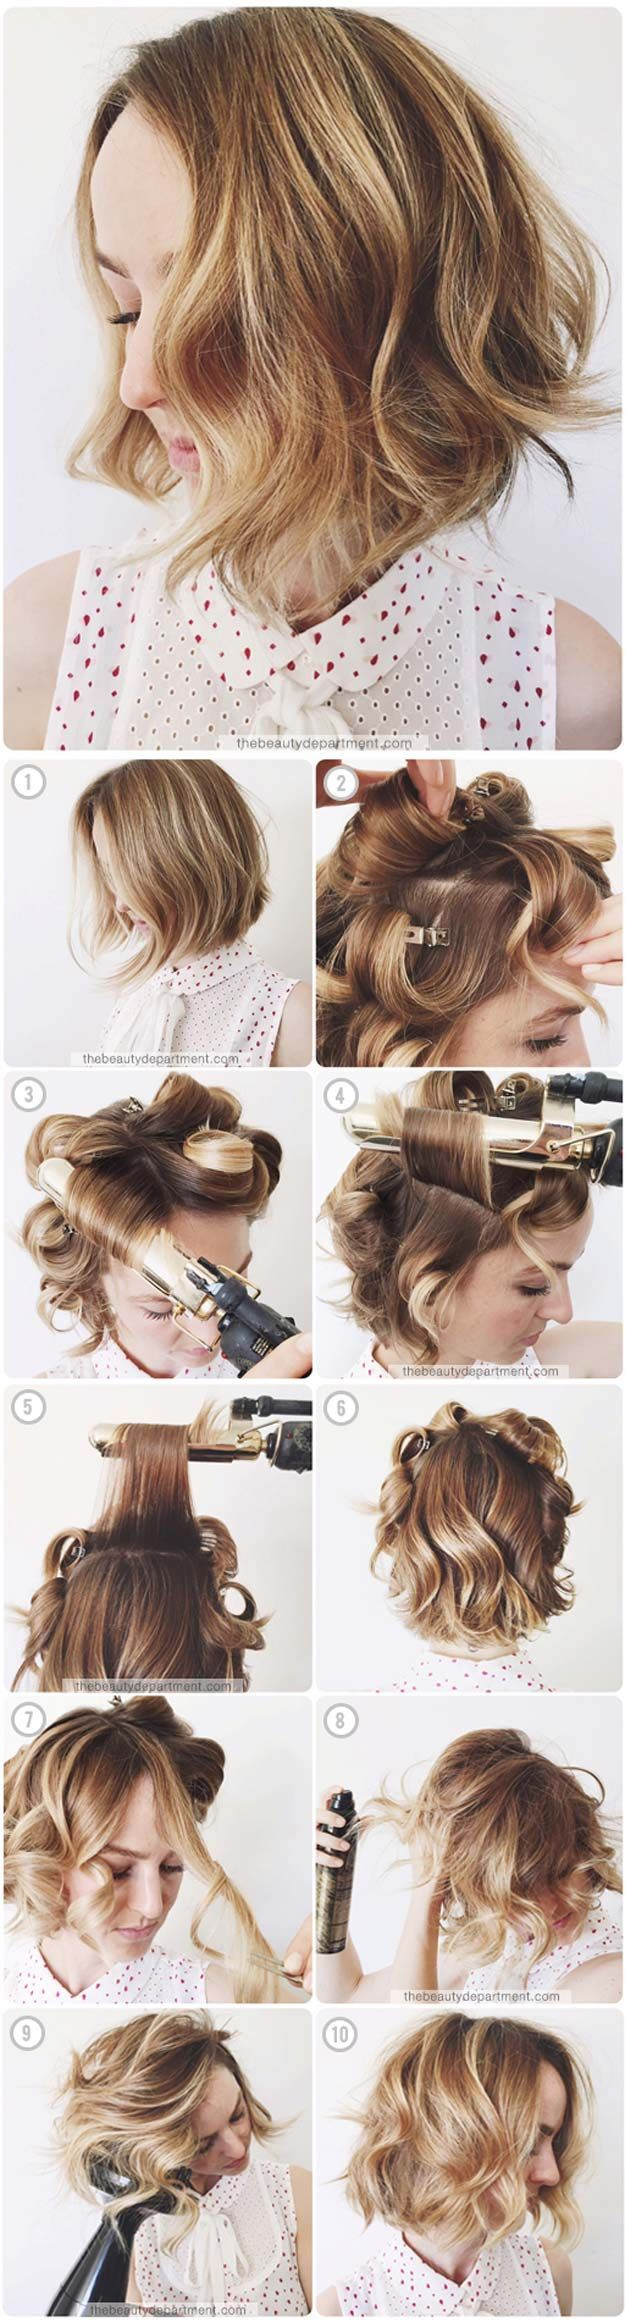 Best Hairstyles For Your 60s - Hairstyles for 60 Year Old Woman with Glasses - Best Haircuts For Women In Their 60s With Short Or Long Hair. Most Flattering Haircuts And Hairstyles For Women In Their 60s, With The Best Hair Styles And Ideas On Pinterest And Instagram. Stylish And Sexy Short Hairstyles For Over 60 Youthful Hairstyles Over 60. Hairstyles For Over 60 Women With Fine Hair, And Medium Length Hairstyles Over 60 That Are Super Cute, Low Maintenance, And Sexy. Photo Galleries And…